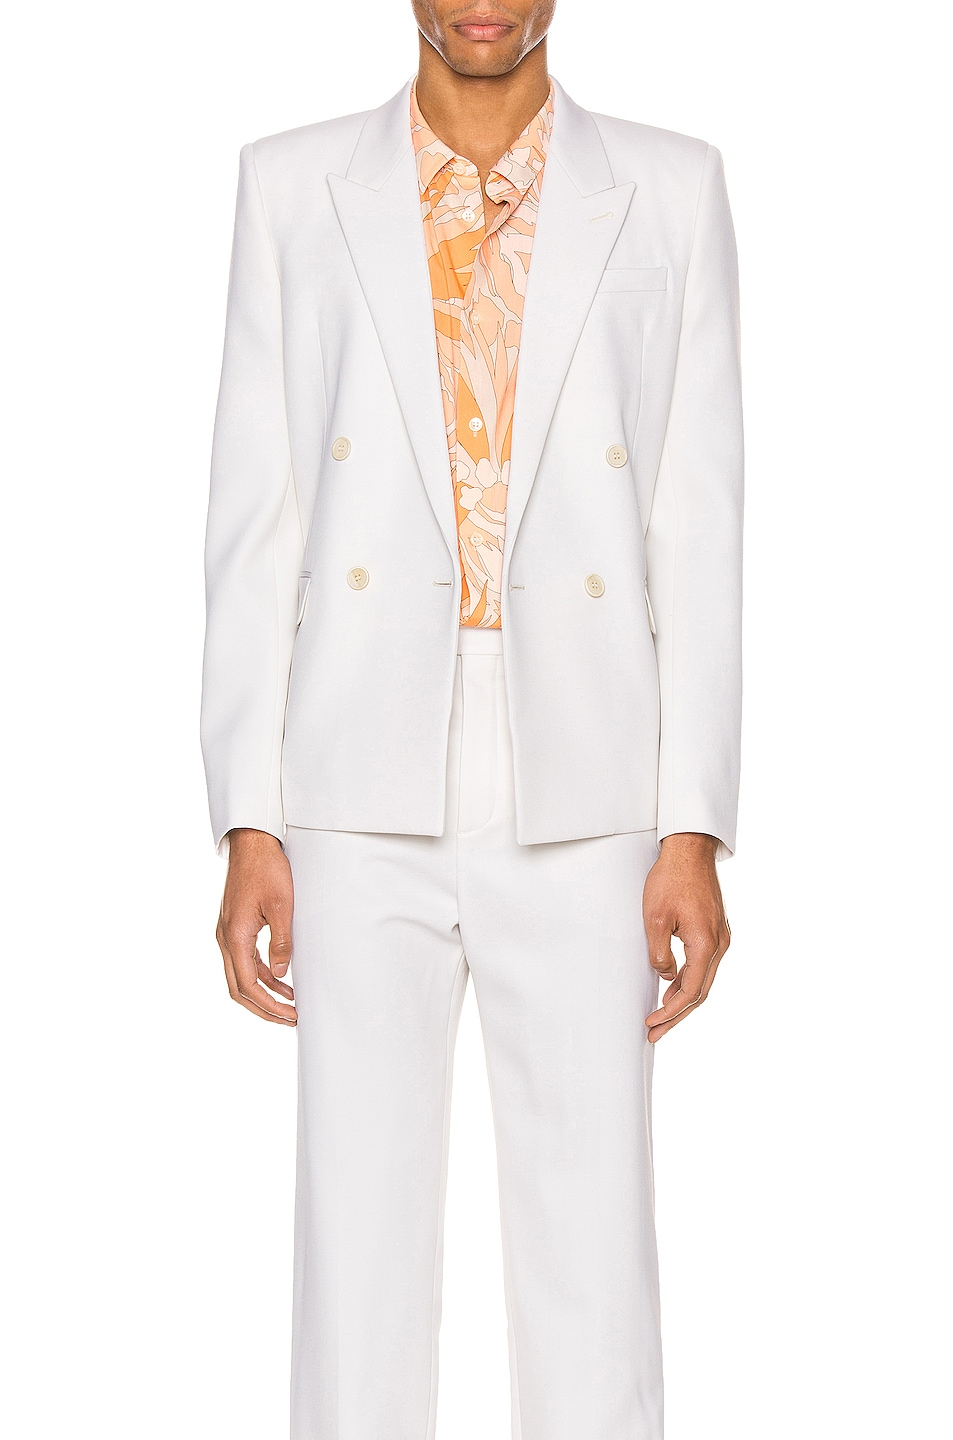 Image 1 of Saint Laurent Suit Jacket in Chalk